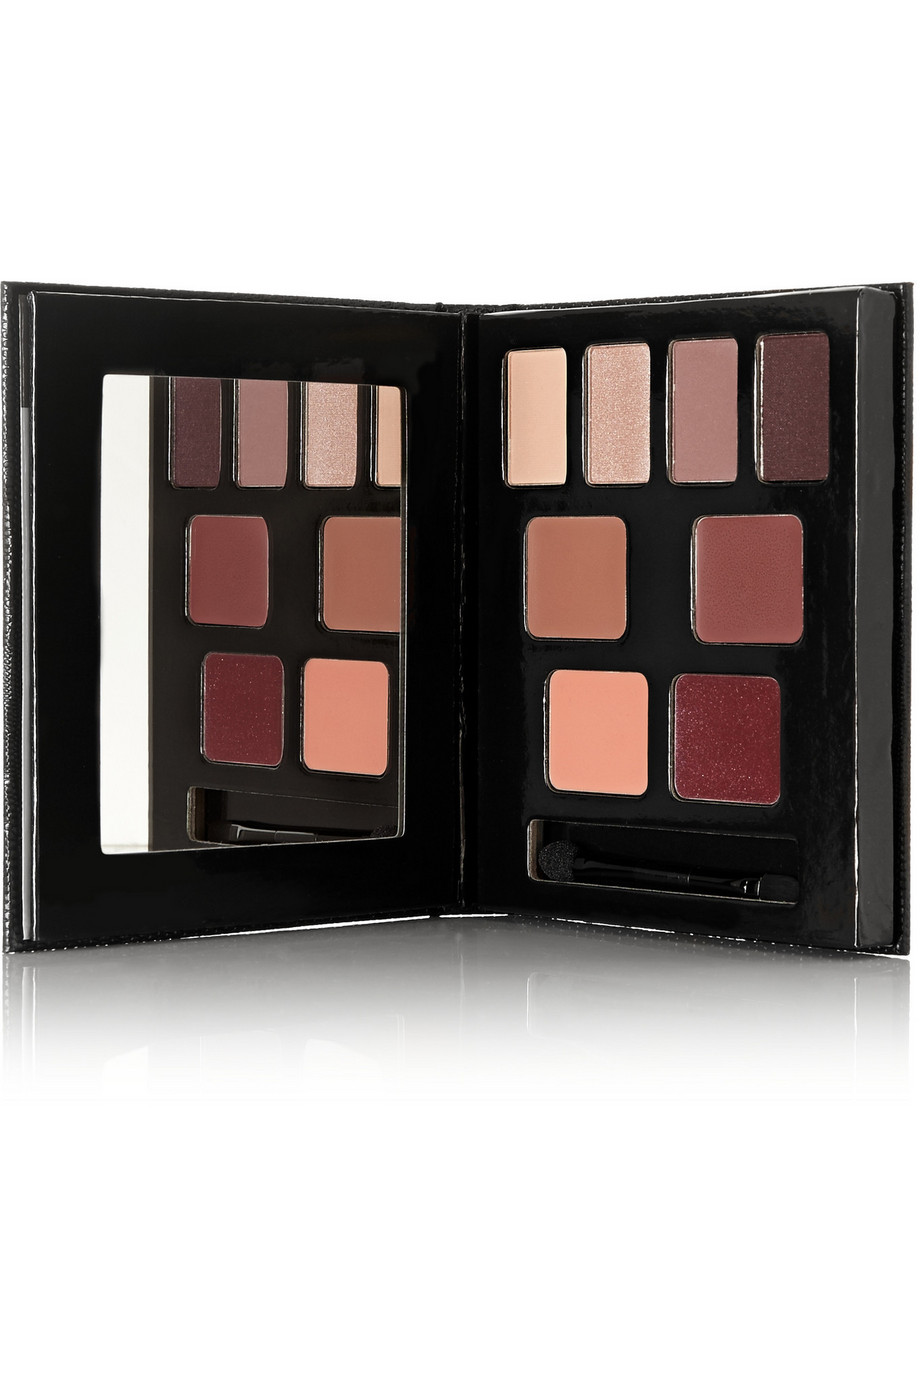 Look Book Palette, by Kevyn Aucoin